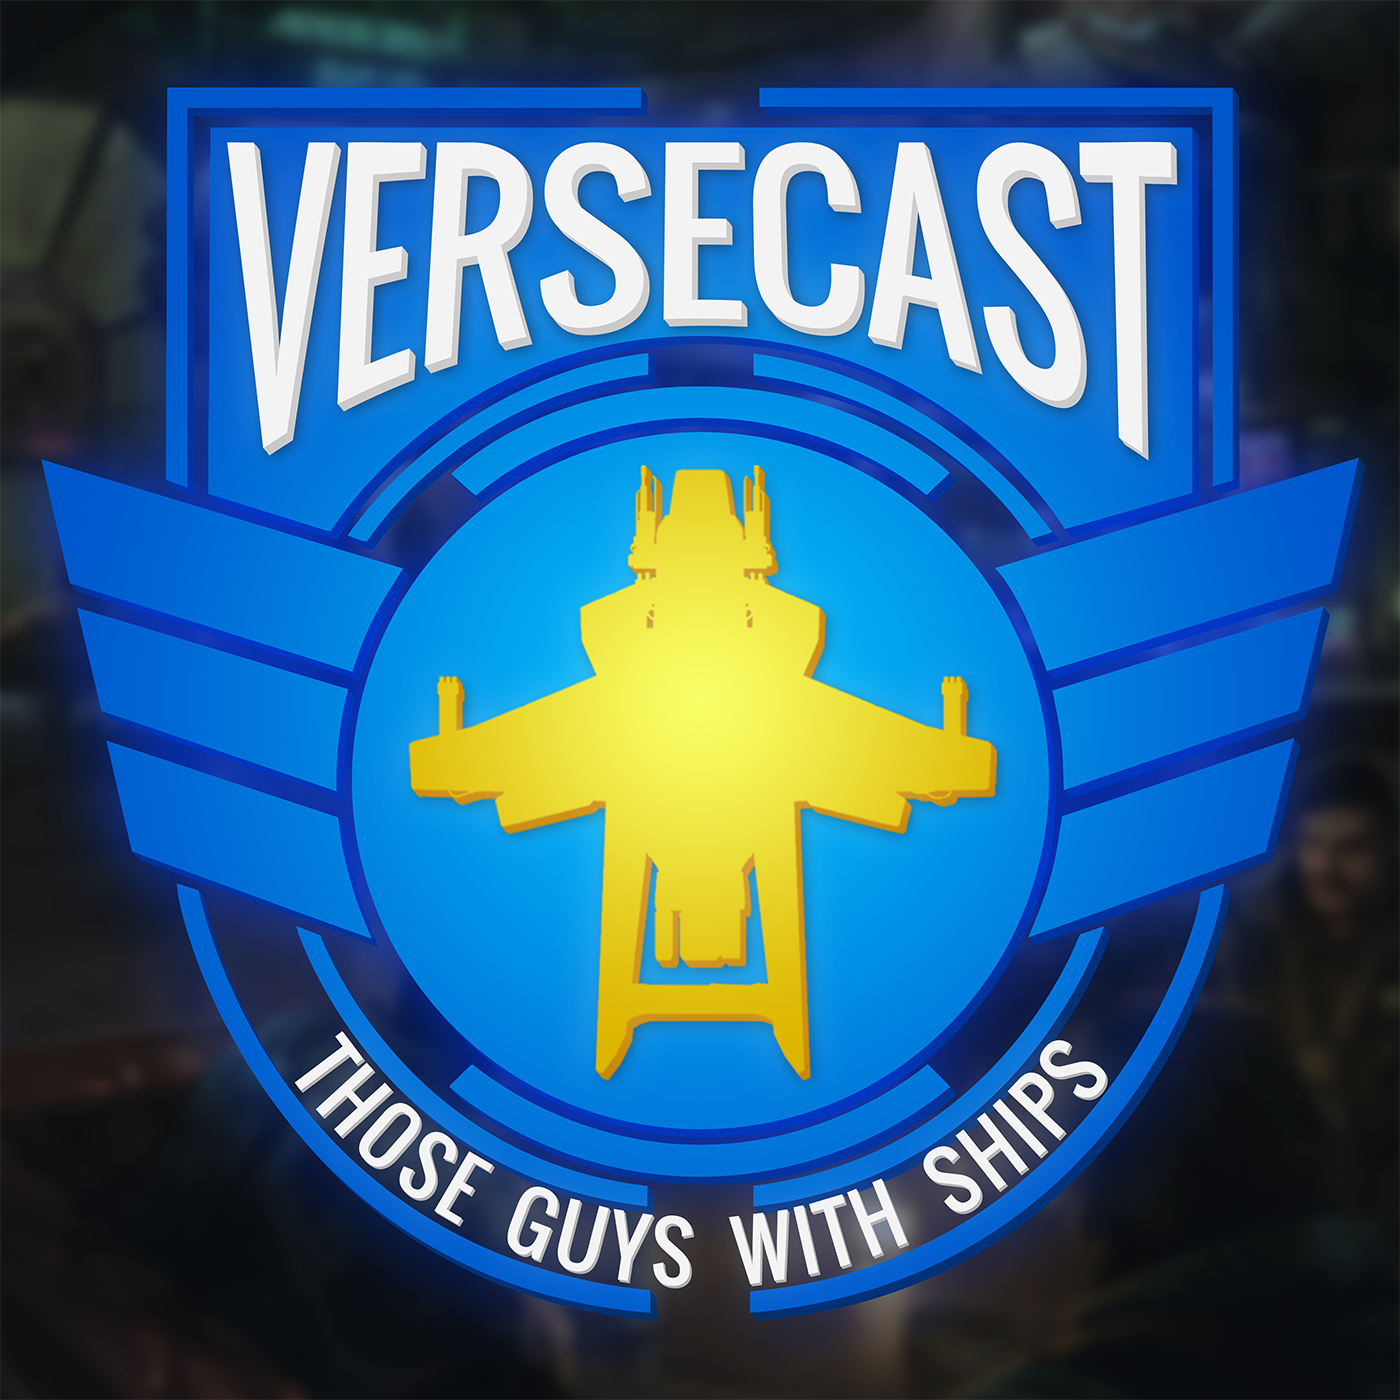 Versecast: The Those Guys with Ships Gaming Community Podcast